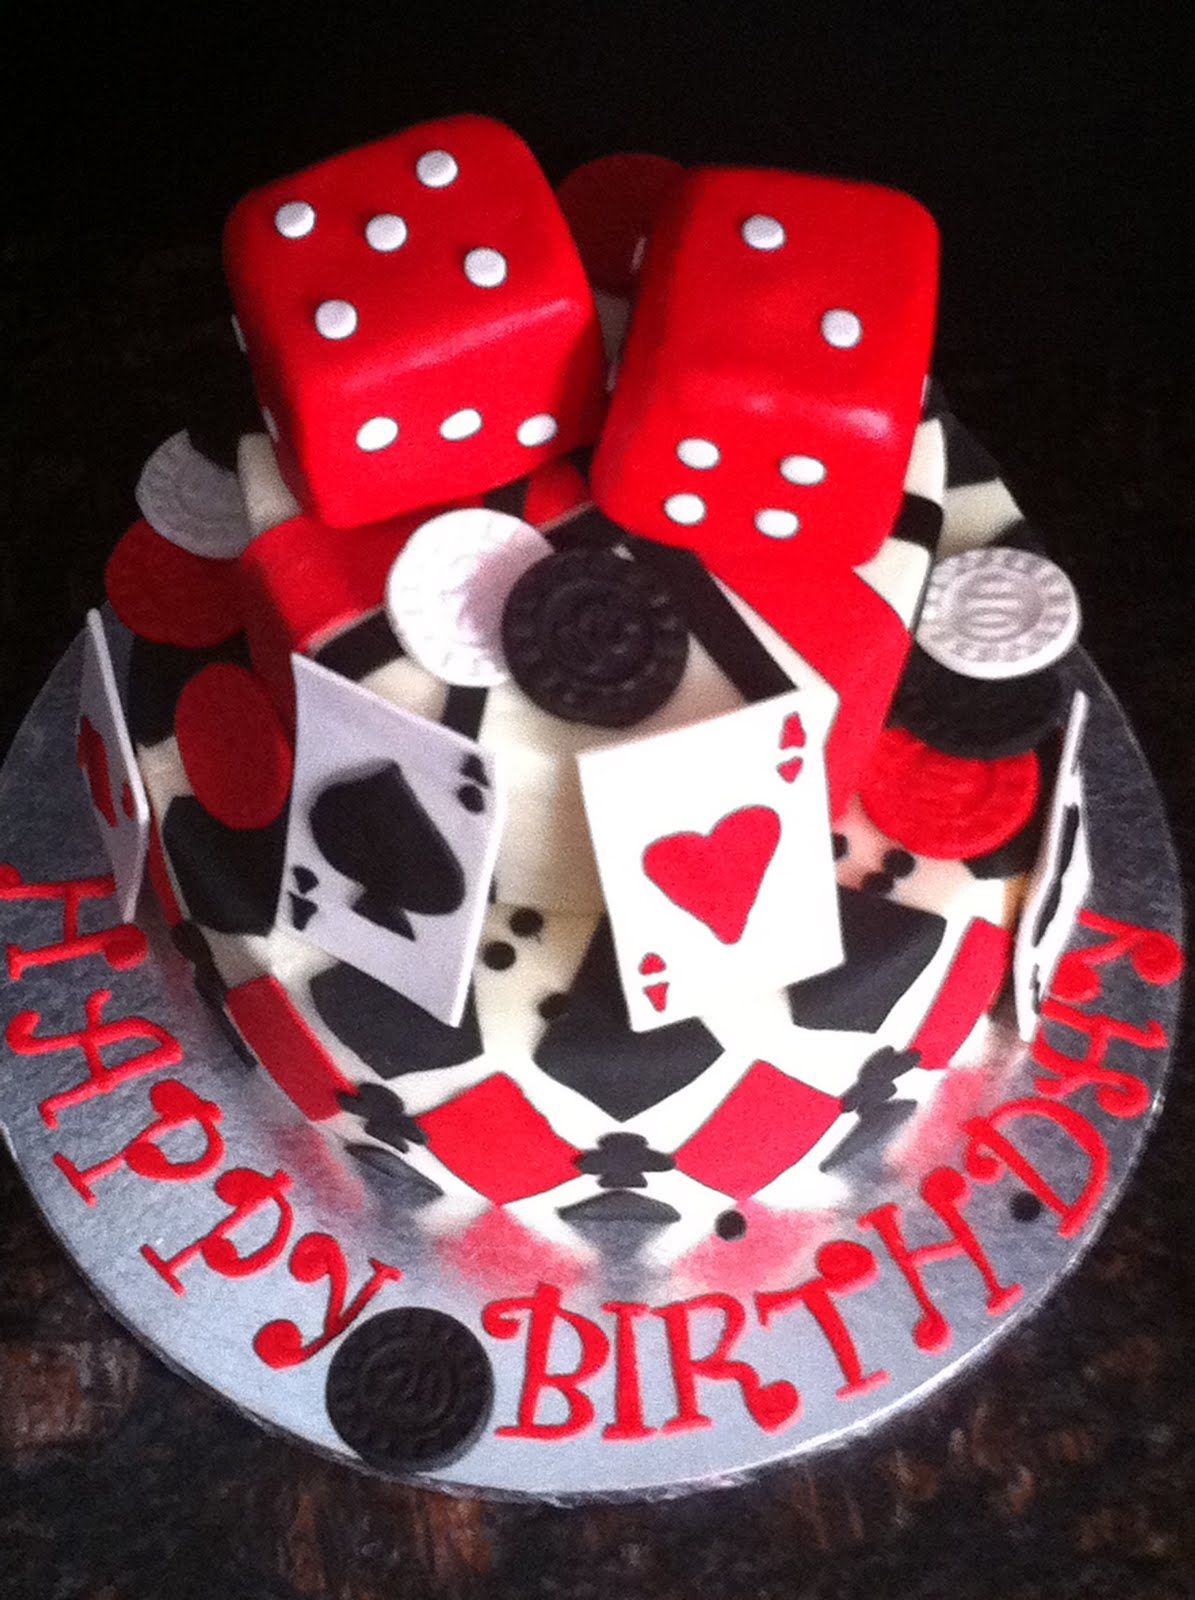 Casino birthday cake want stop gambling but can t